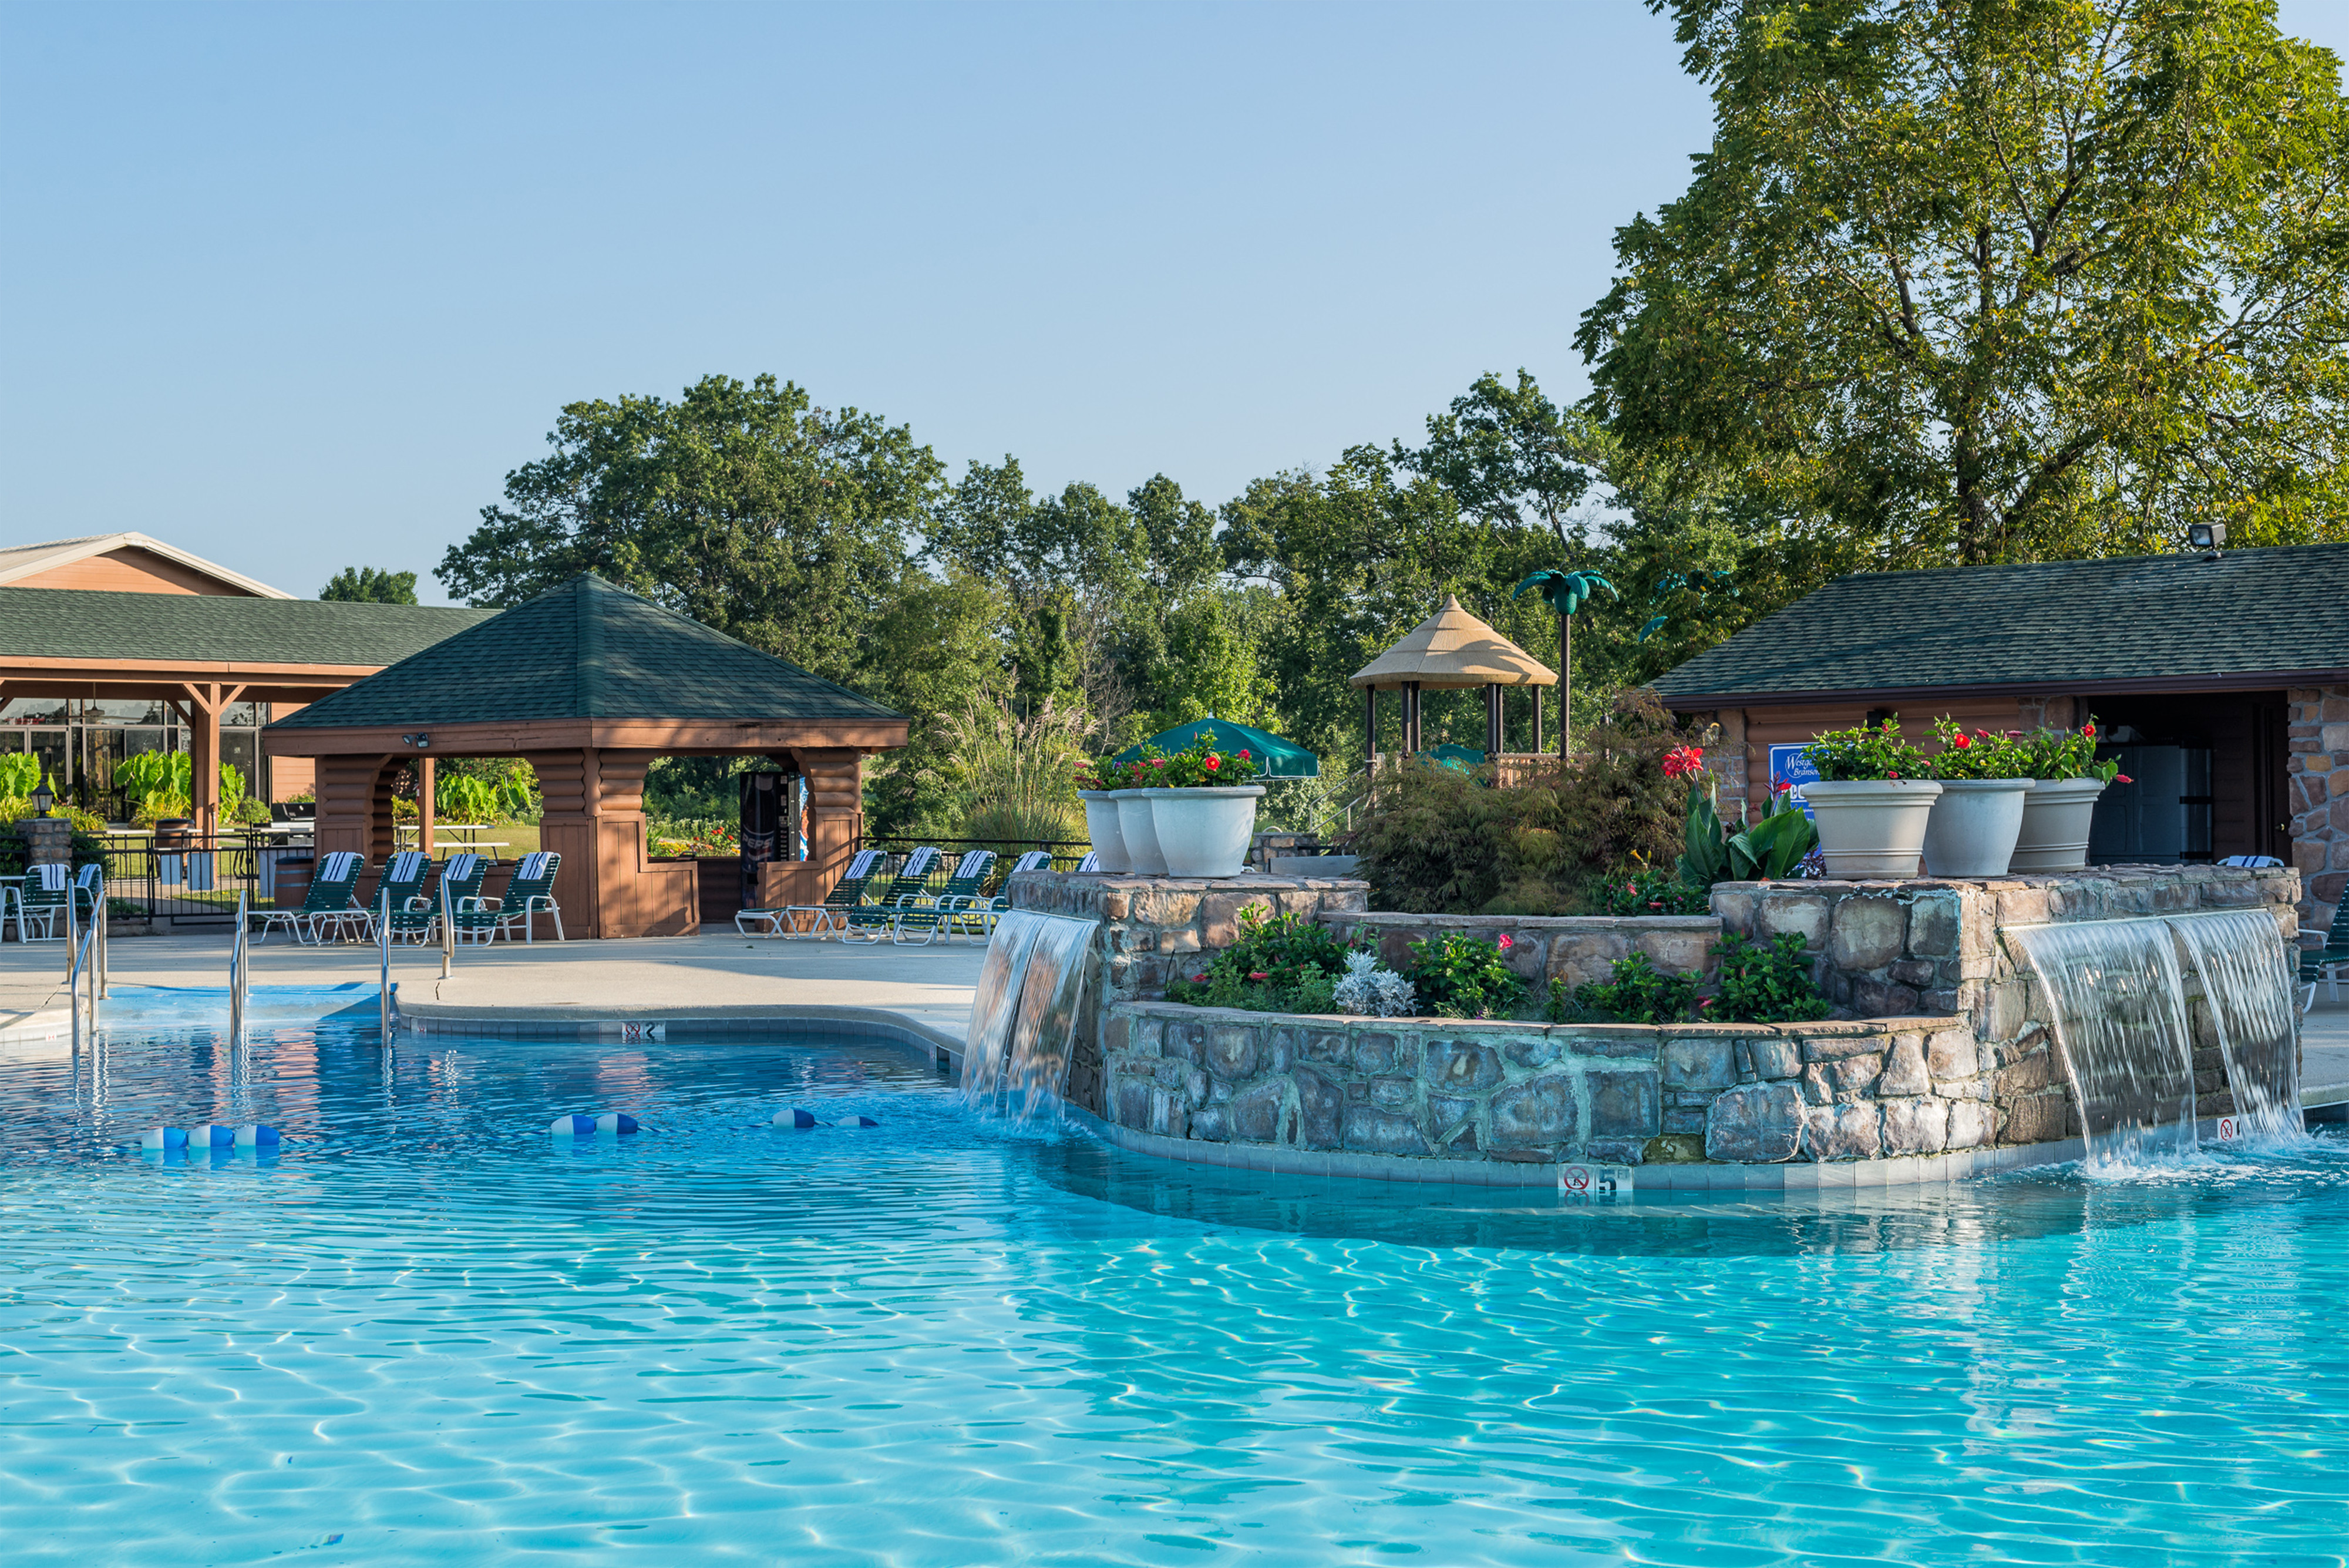 Westgate - How to sell your timeshare